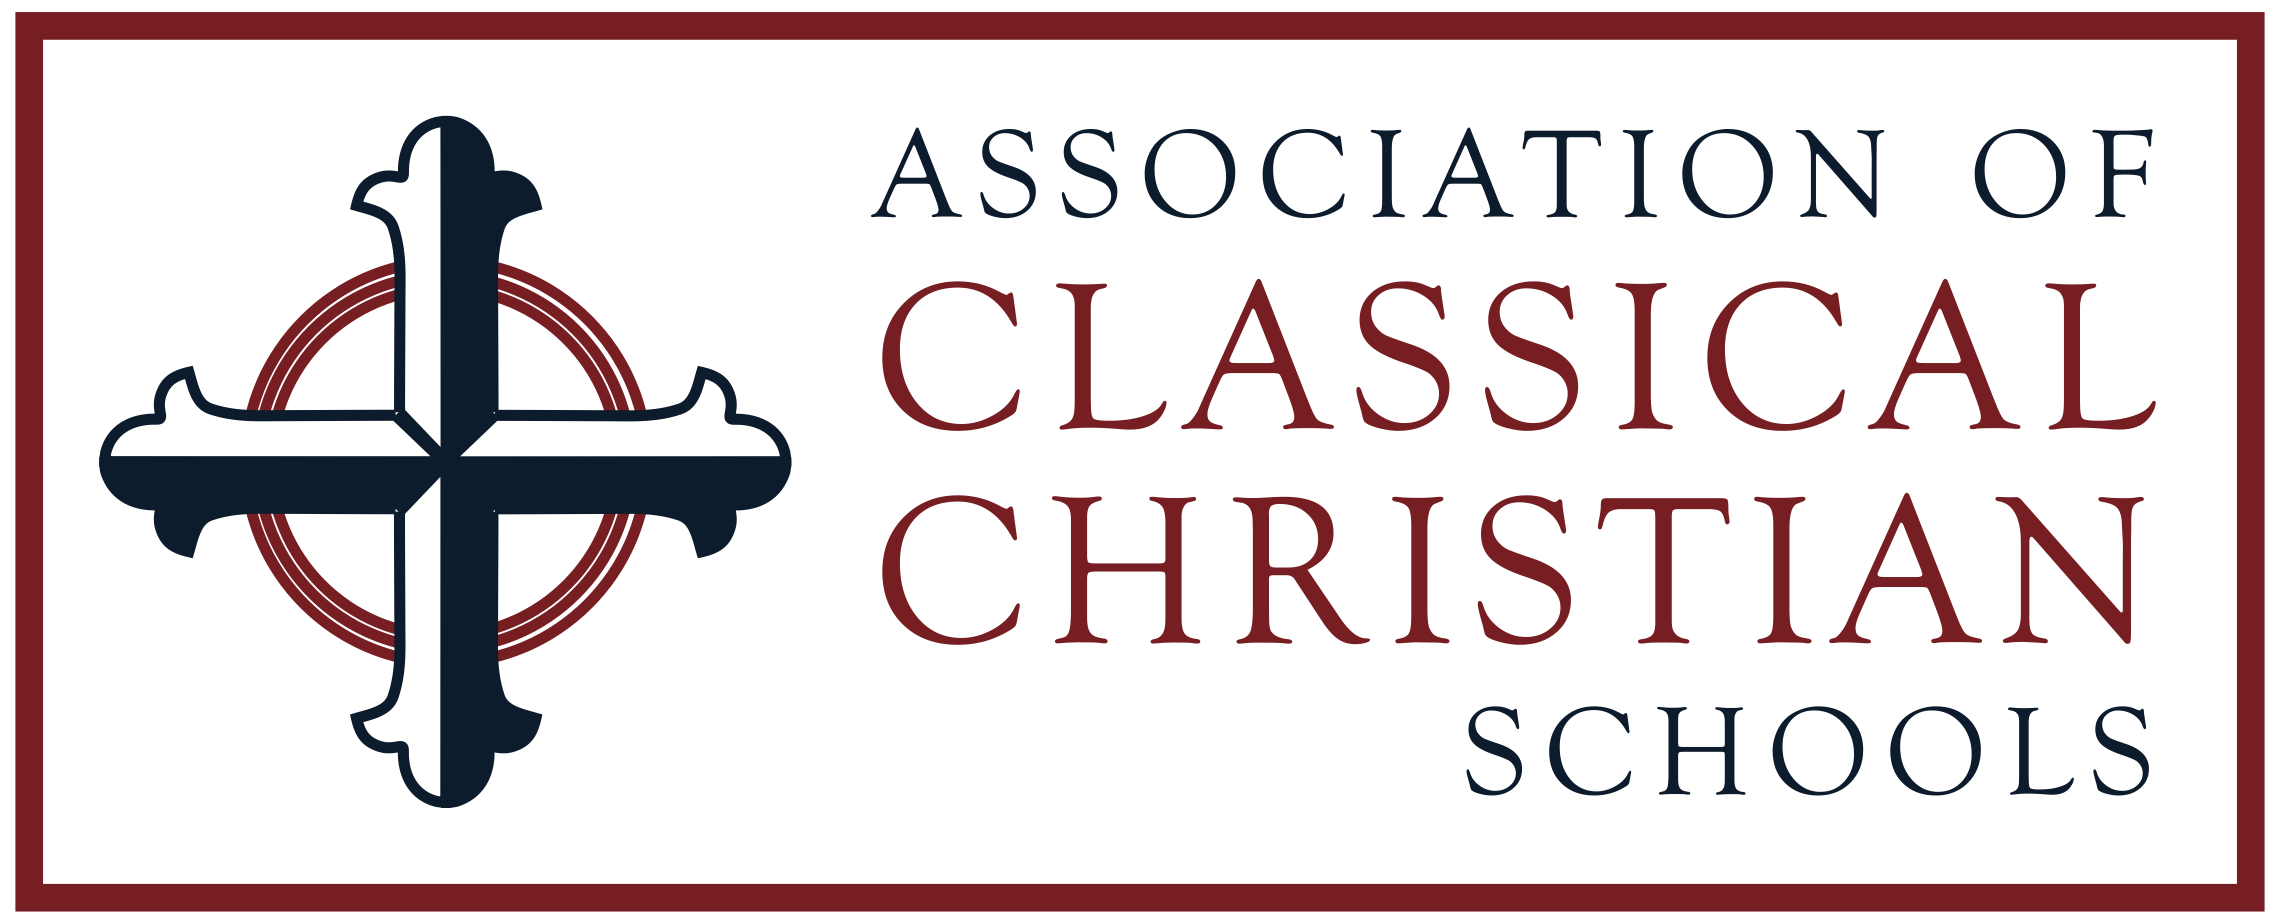 Association of Classical Christian School